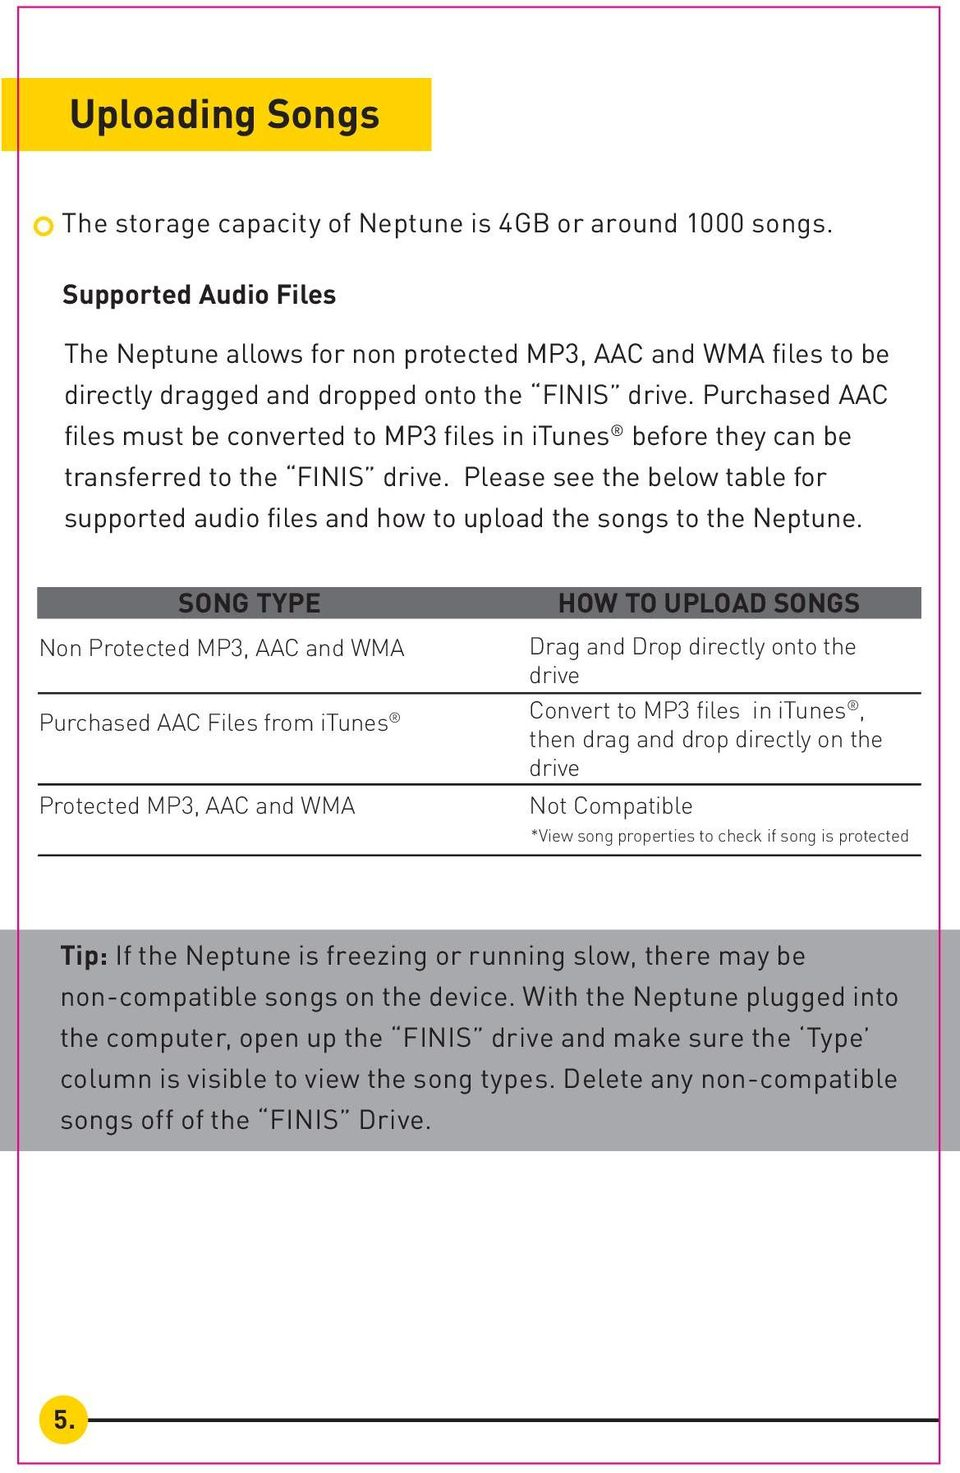 Purchased AAC files must be converted to MP3 files in itunes before they can be transferred to the FINIS drive.